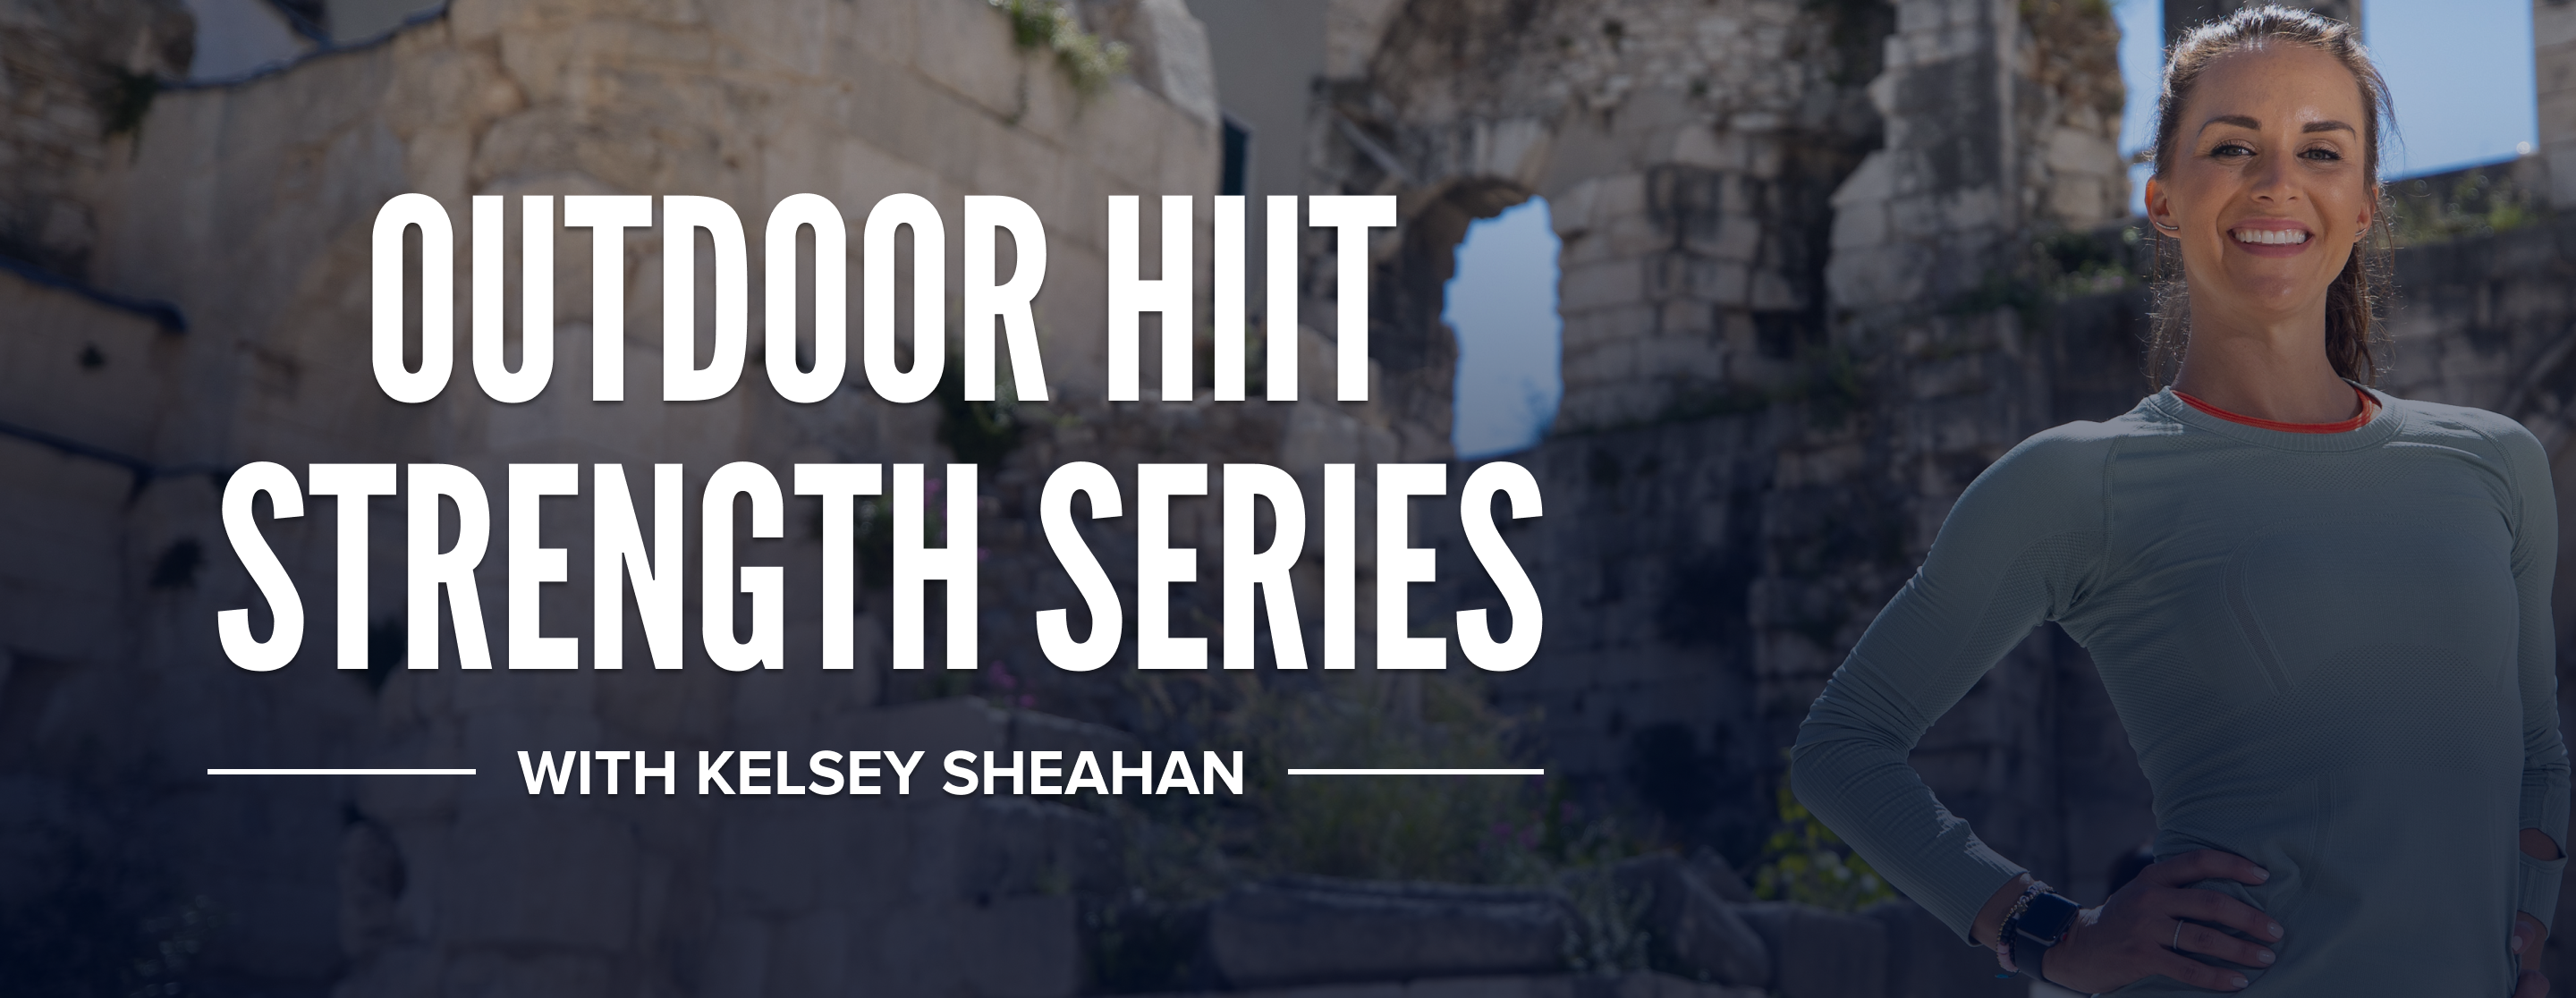 Outdoor HIIT Strength Series with iFit Trainer Kelsey Sheahan